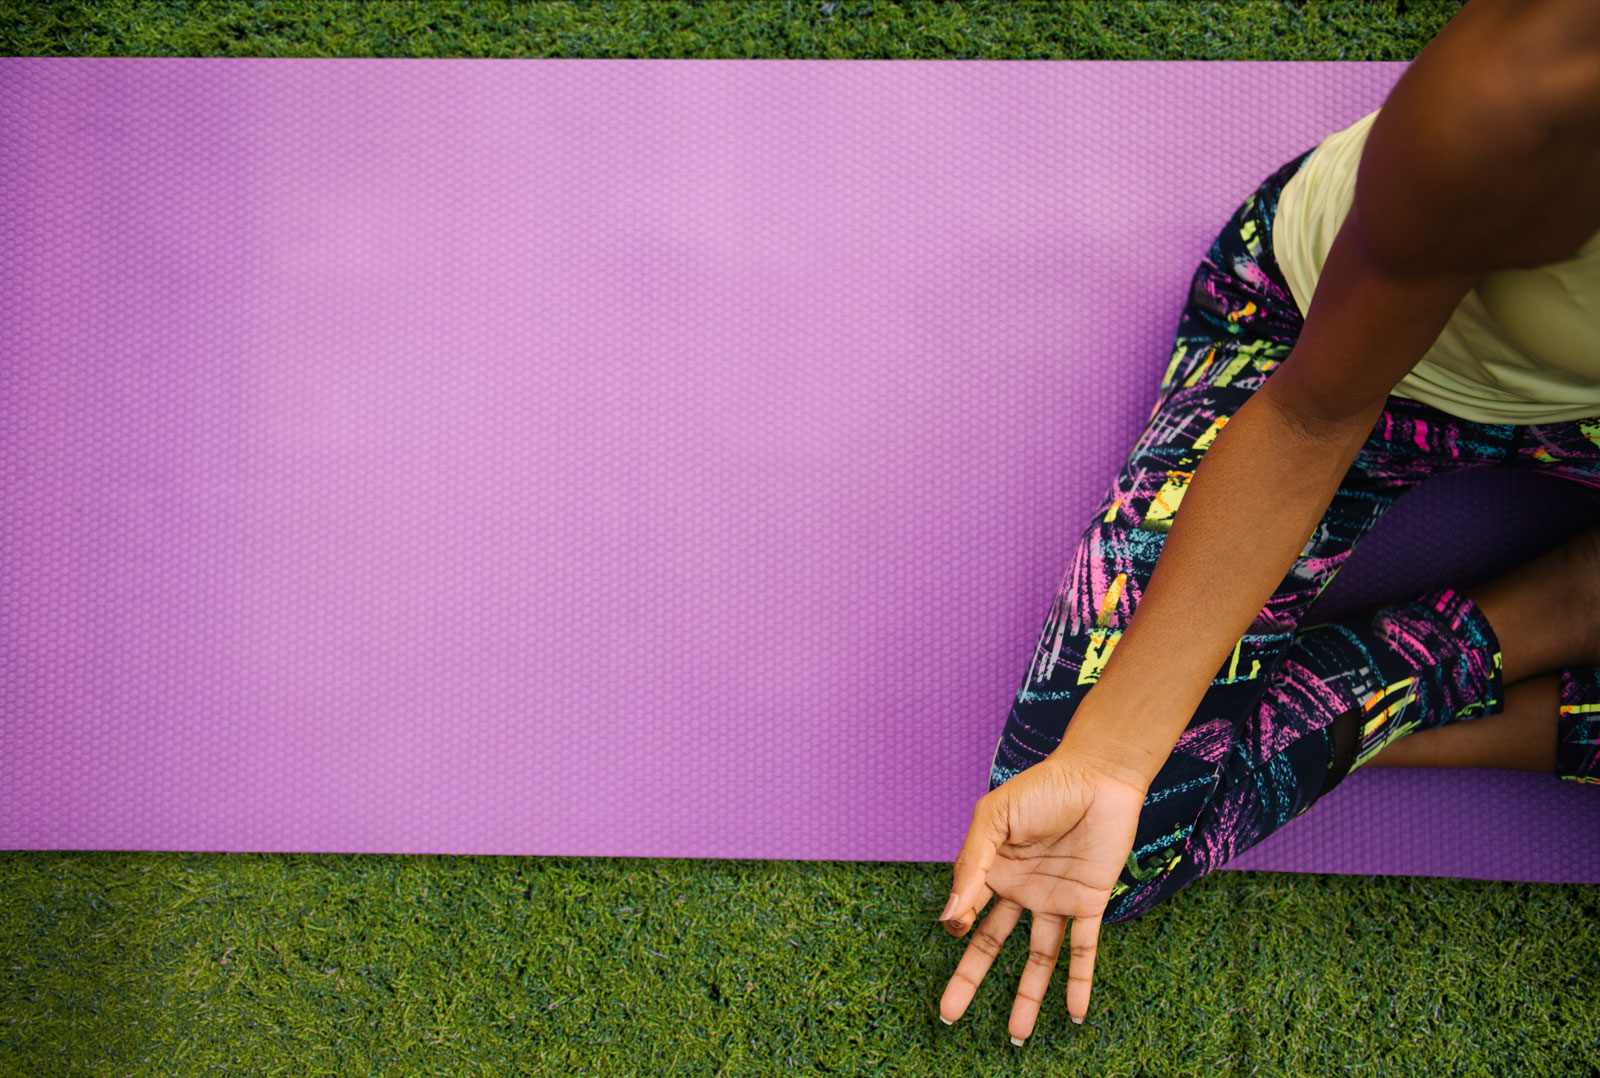 a woman doing yoga in a purple mat on the grass